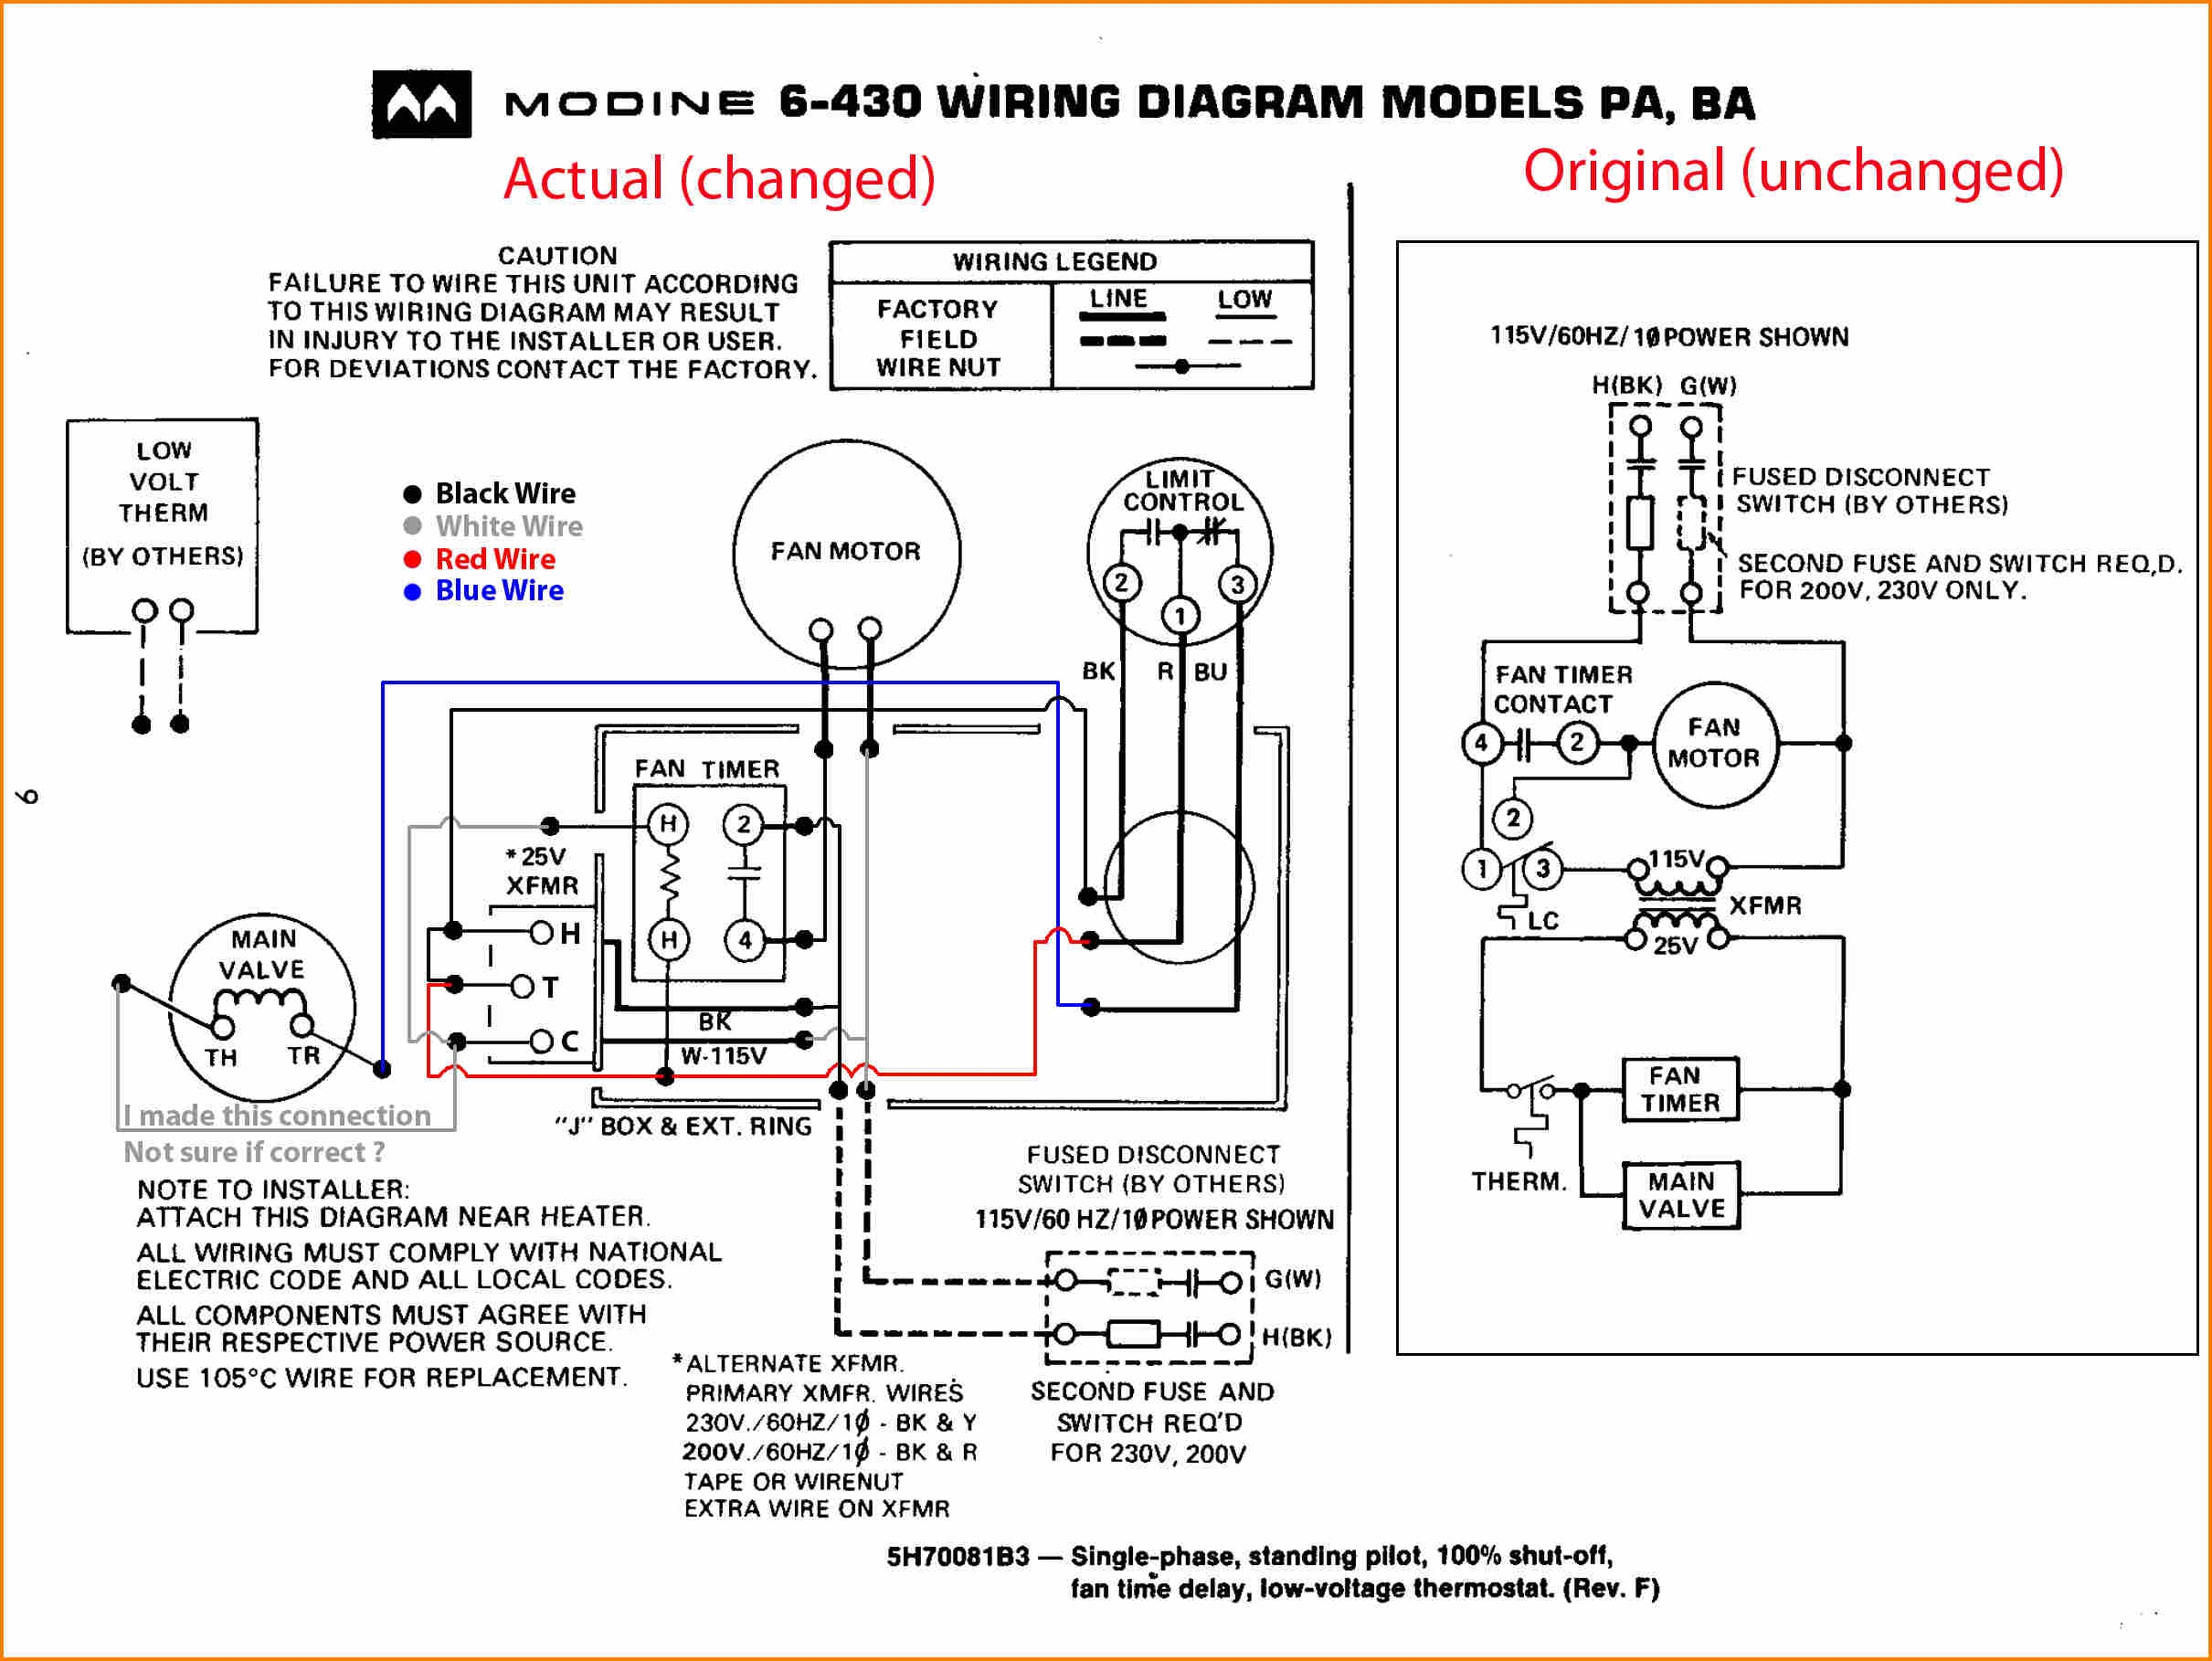 Hvac Motor Wiring Diagram - Wiring Diagram Name